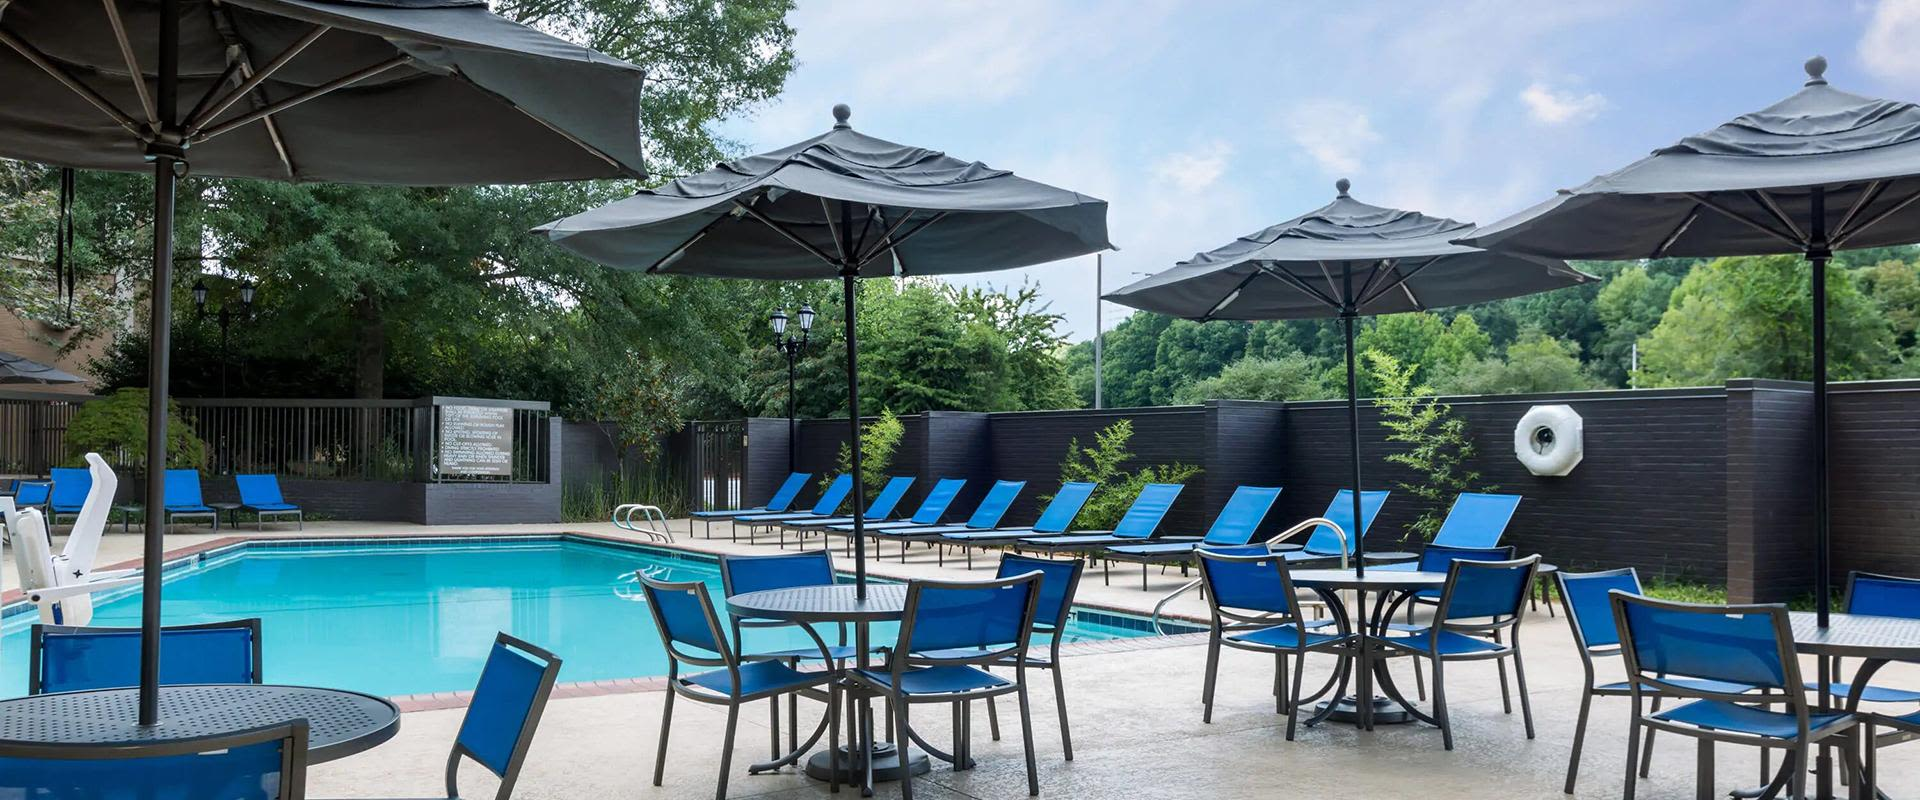 Outdoor tables and umbrellas by pool